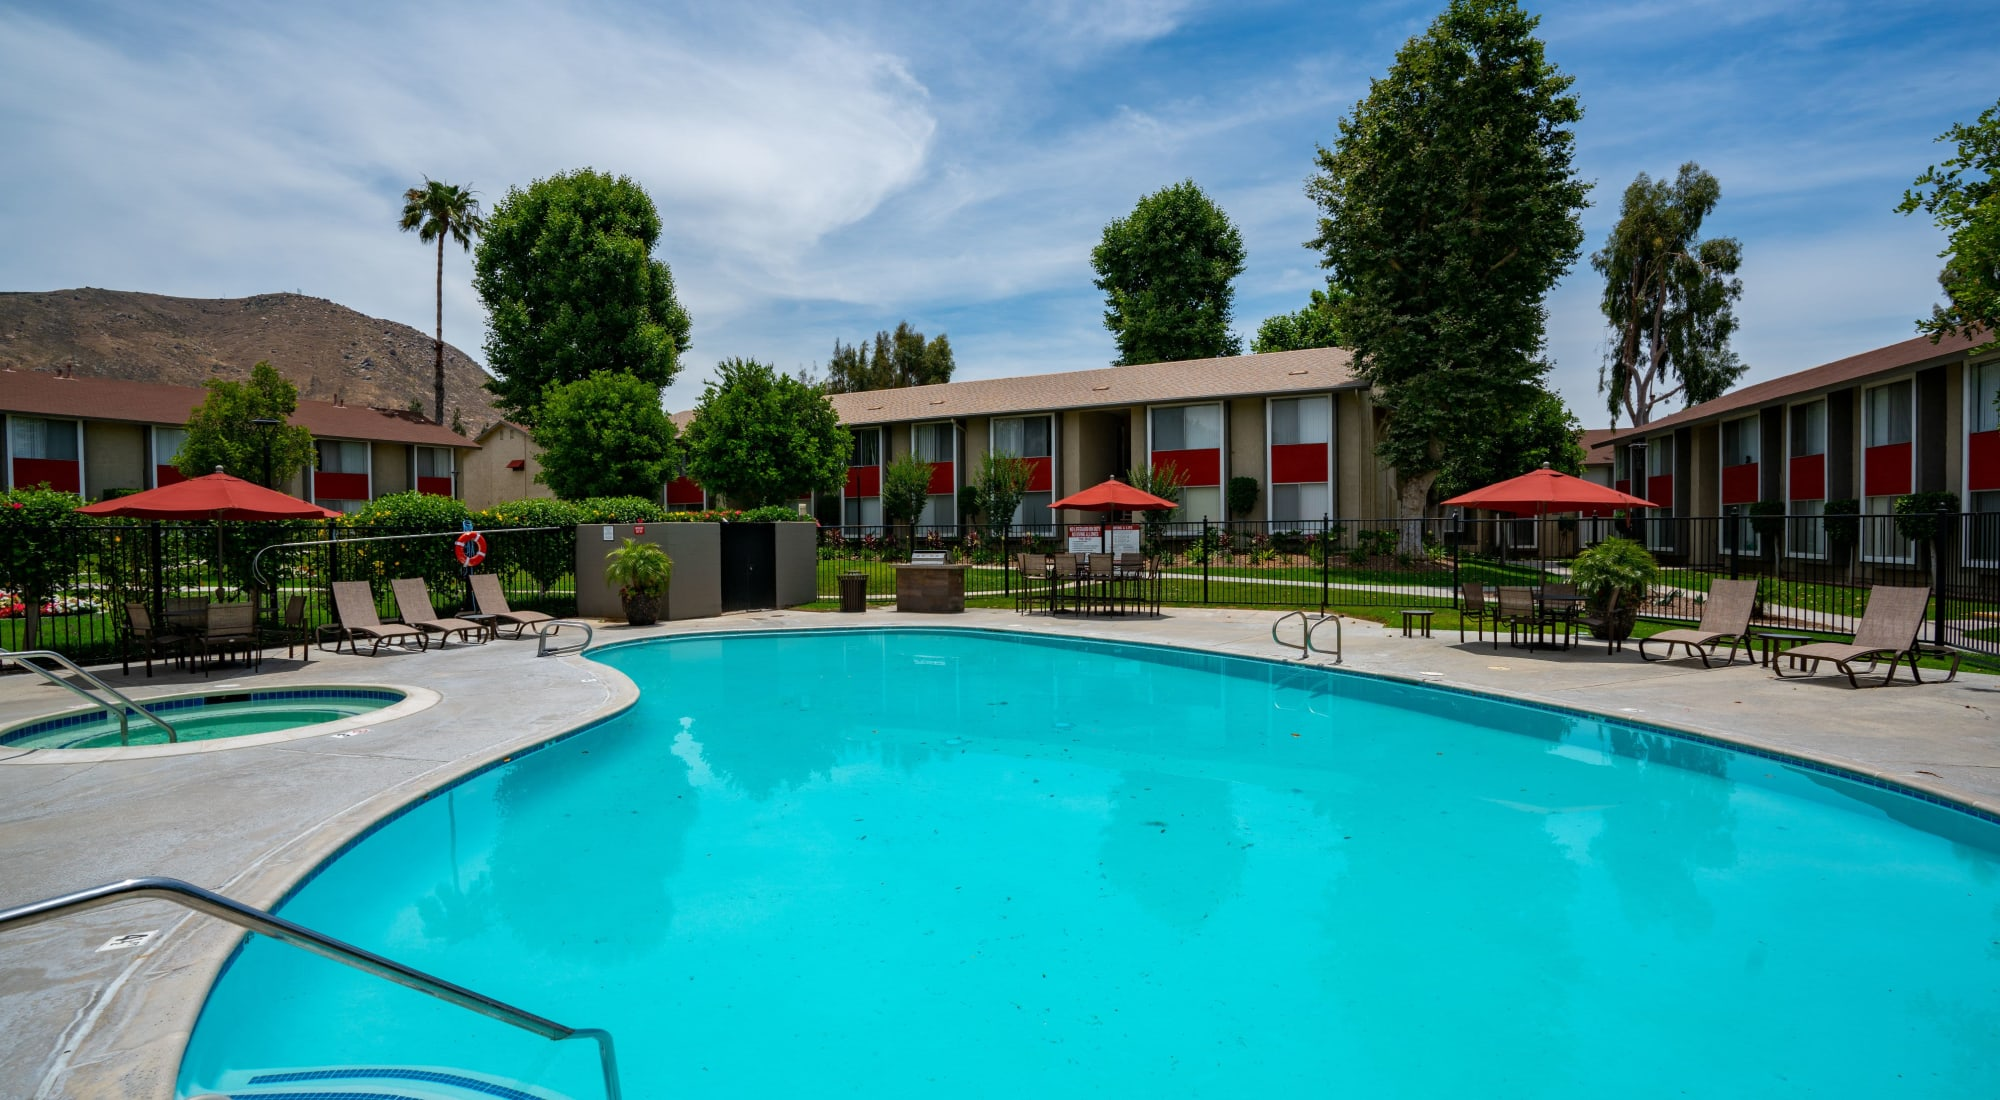 Amenities at The Heights at Grand Terrace in Grand Terrace, California